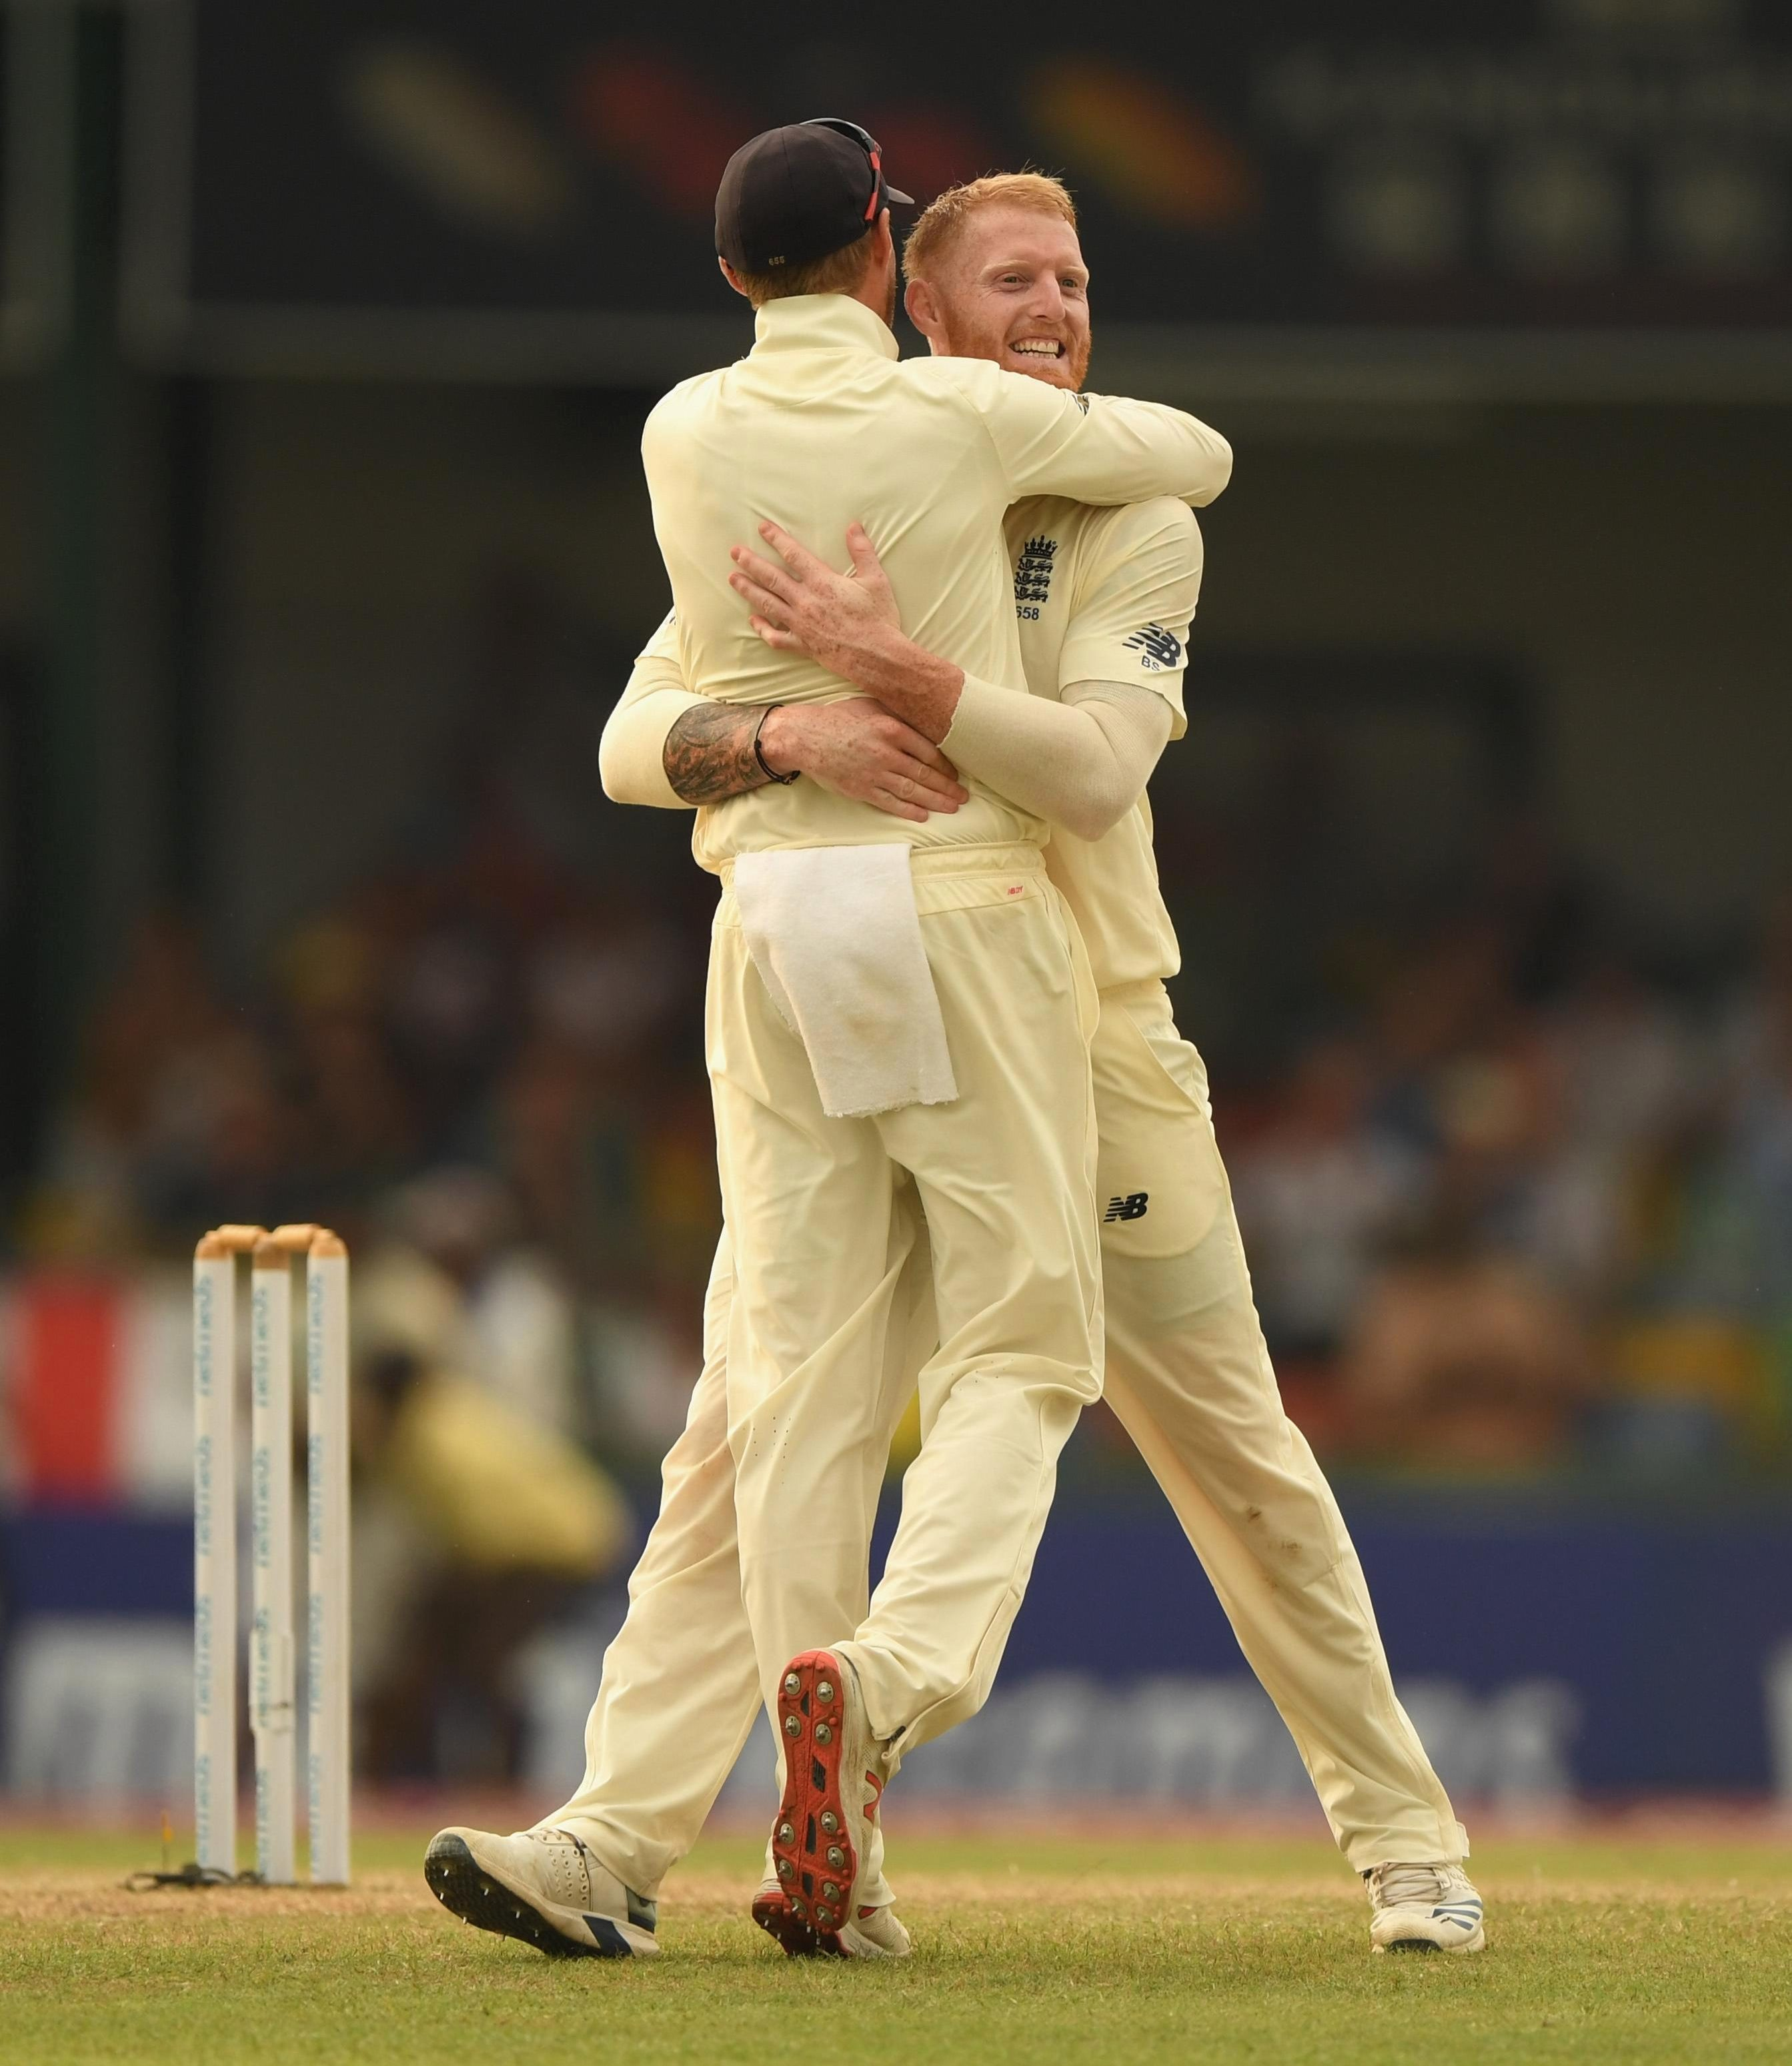 Ben Stokes impressed once again with bat and ball as England roar towards victory